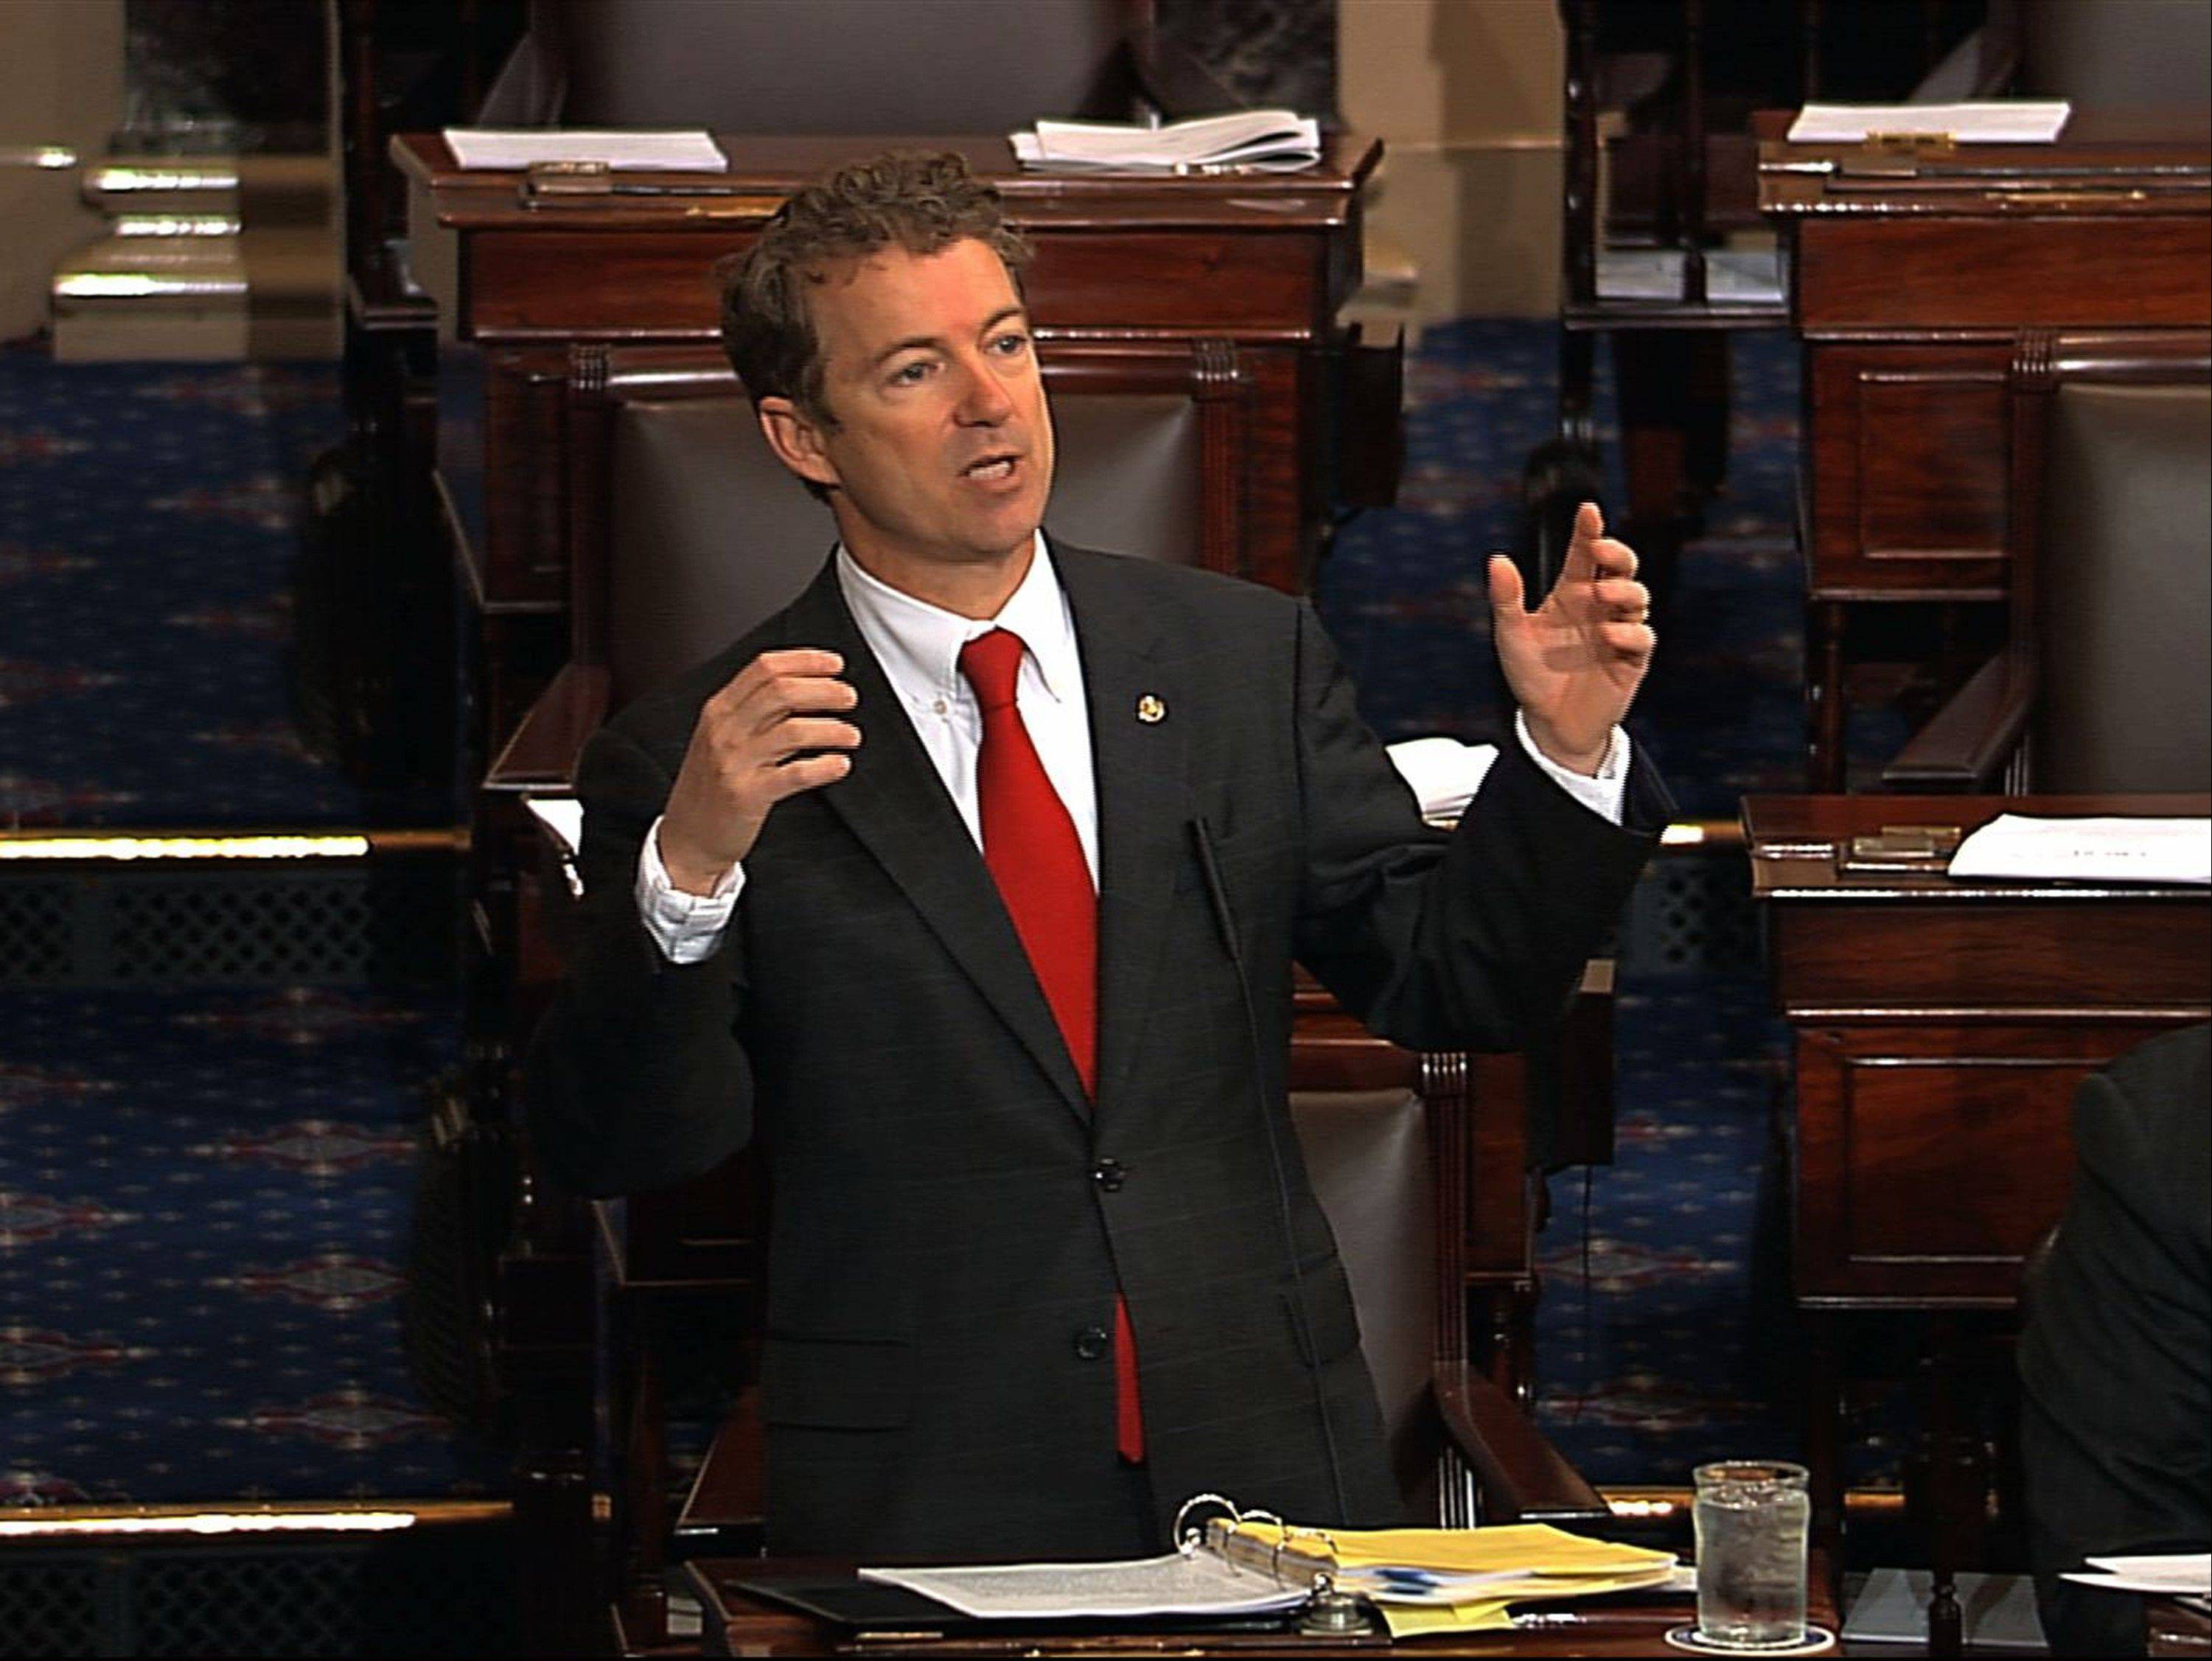 This image provided by Senate Television shows Sen. Rand Paul, a Kentucky Republican, speaking Wednesday on the floor of the Senate in Washington. Senate Democrats had pushed for speedy confirmation of John Brennan's nomination to be CIA director but ran into a snag after a Paul began a lengthy speech over the legality of potential drone strikes on U.S. soil.